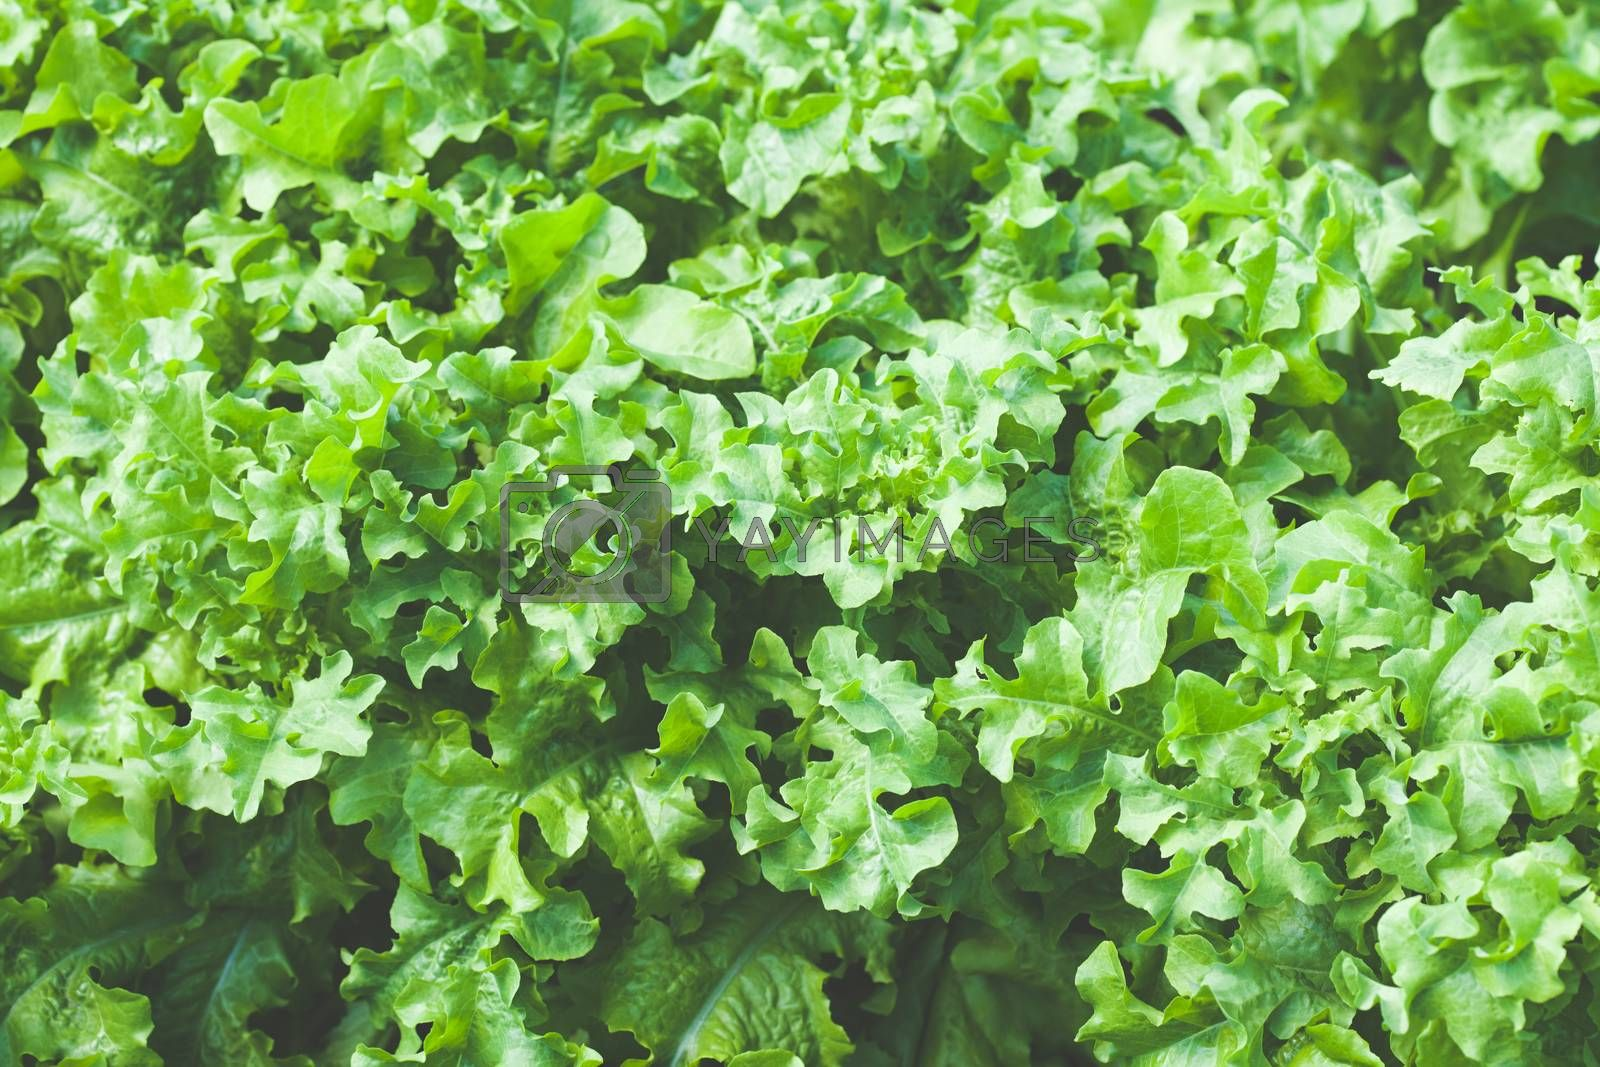 Green salad leaves. Concept of healthy lifestyle and dieting